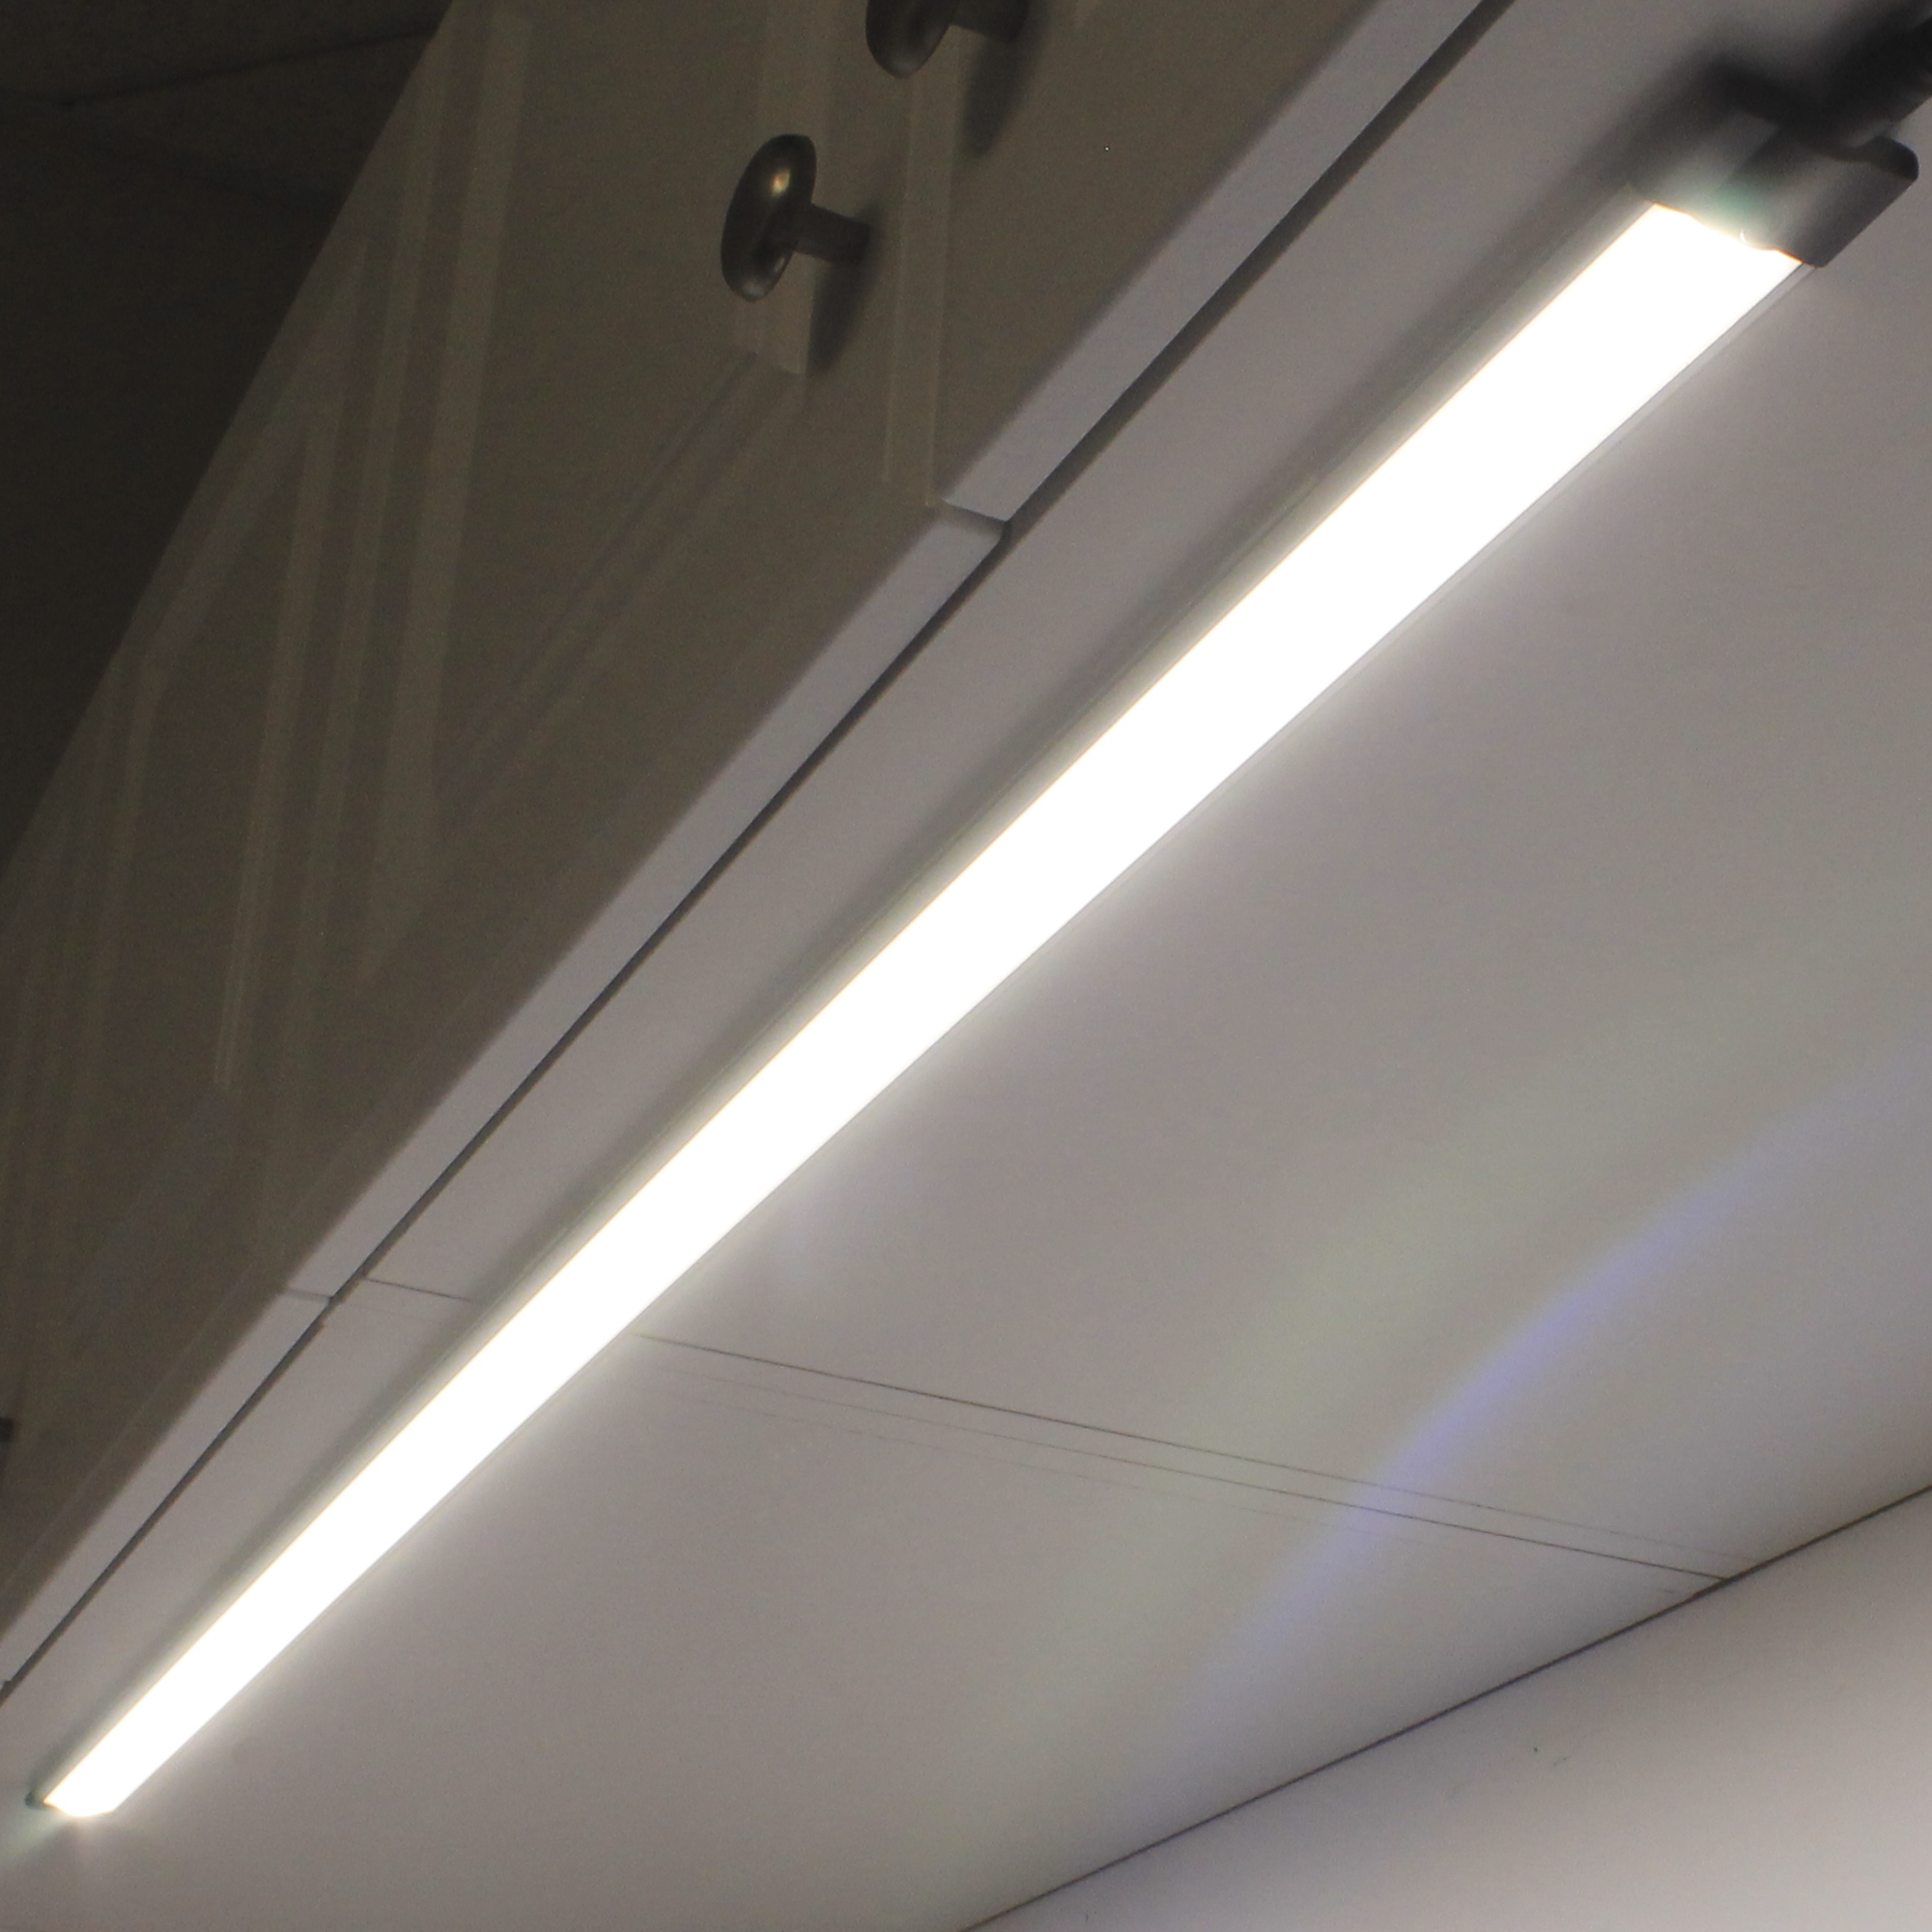 Environmentallightscom Adds New Line Of Led Under Cabinet